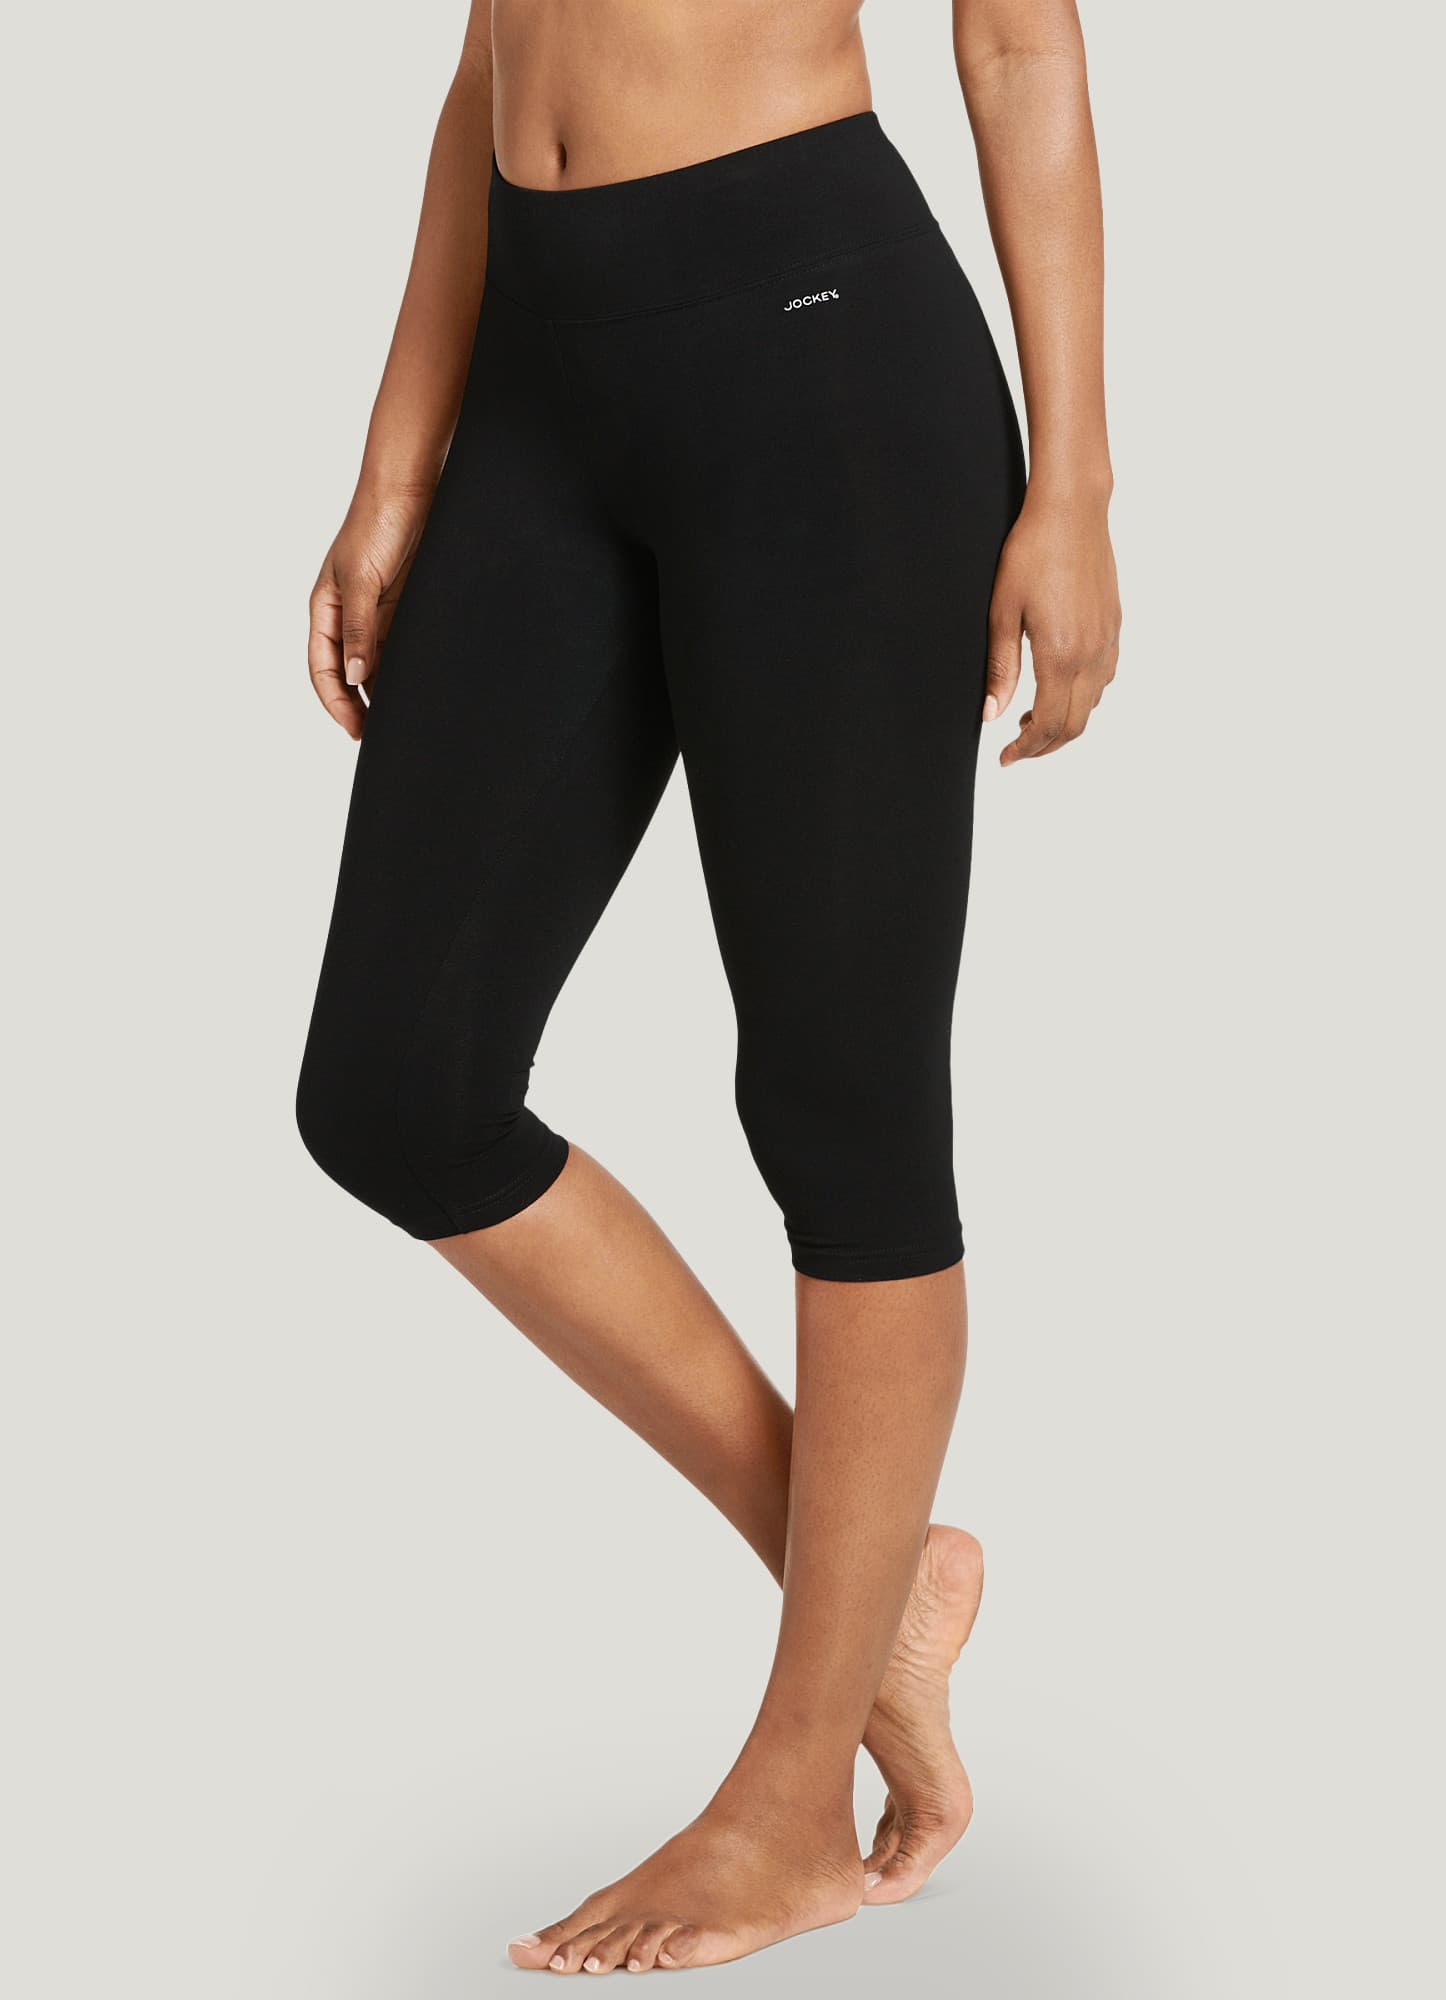 Jockey | Cotton Stretch Capri Legging | Leggings